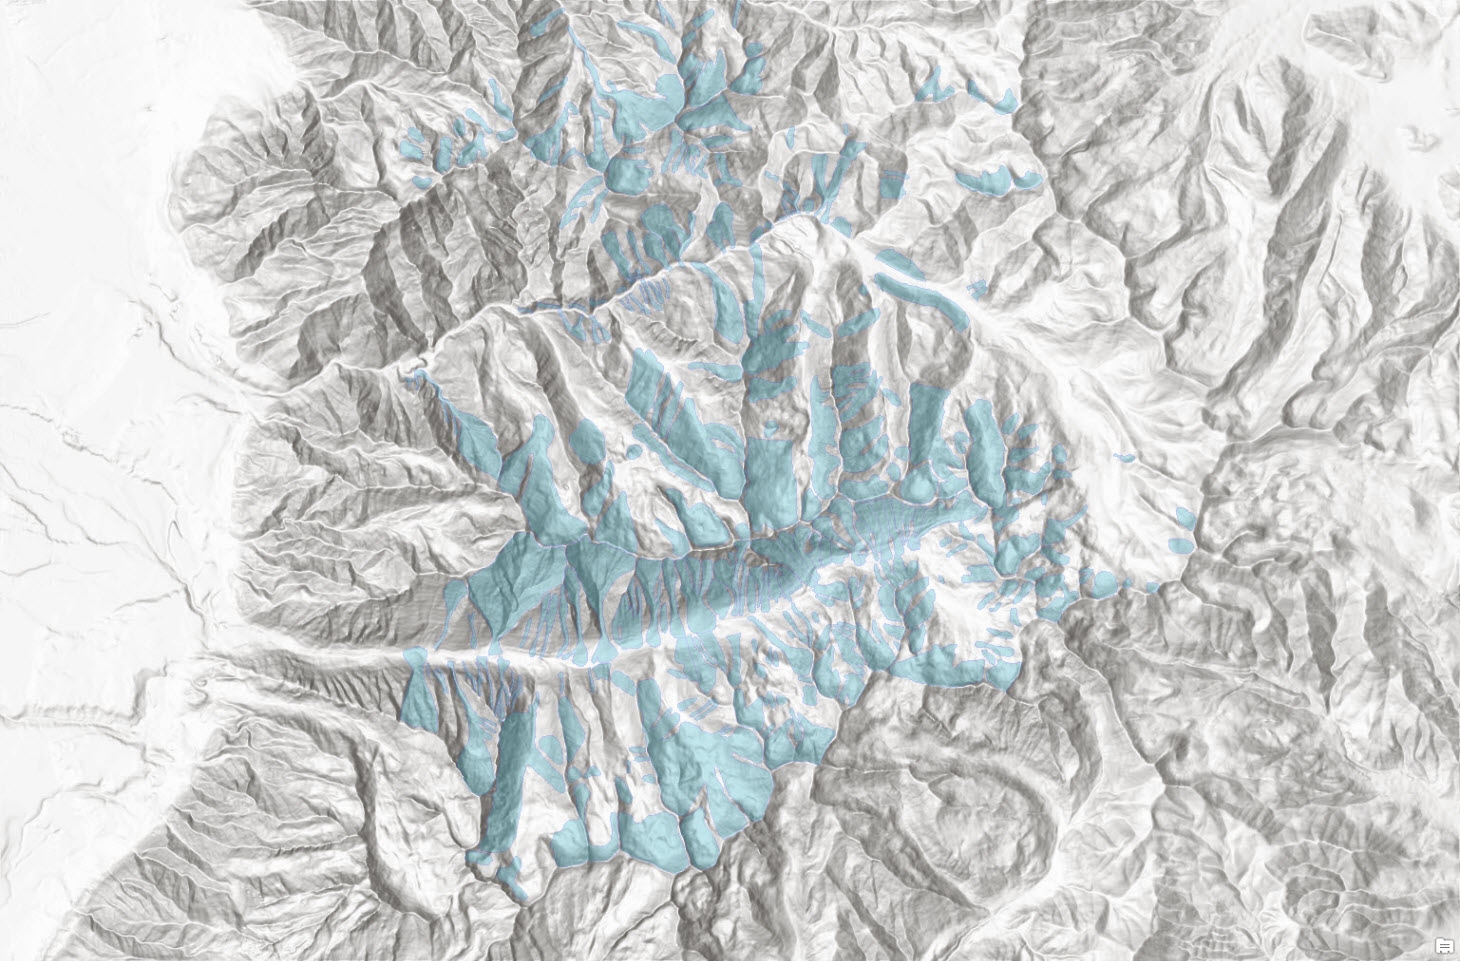 Mapping avalanche paths in southern Utah (USA).